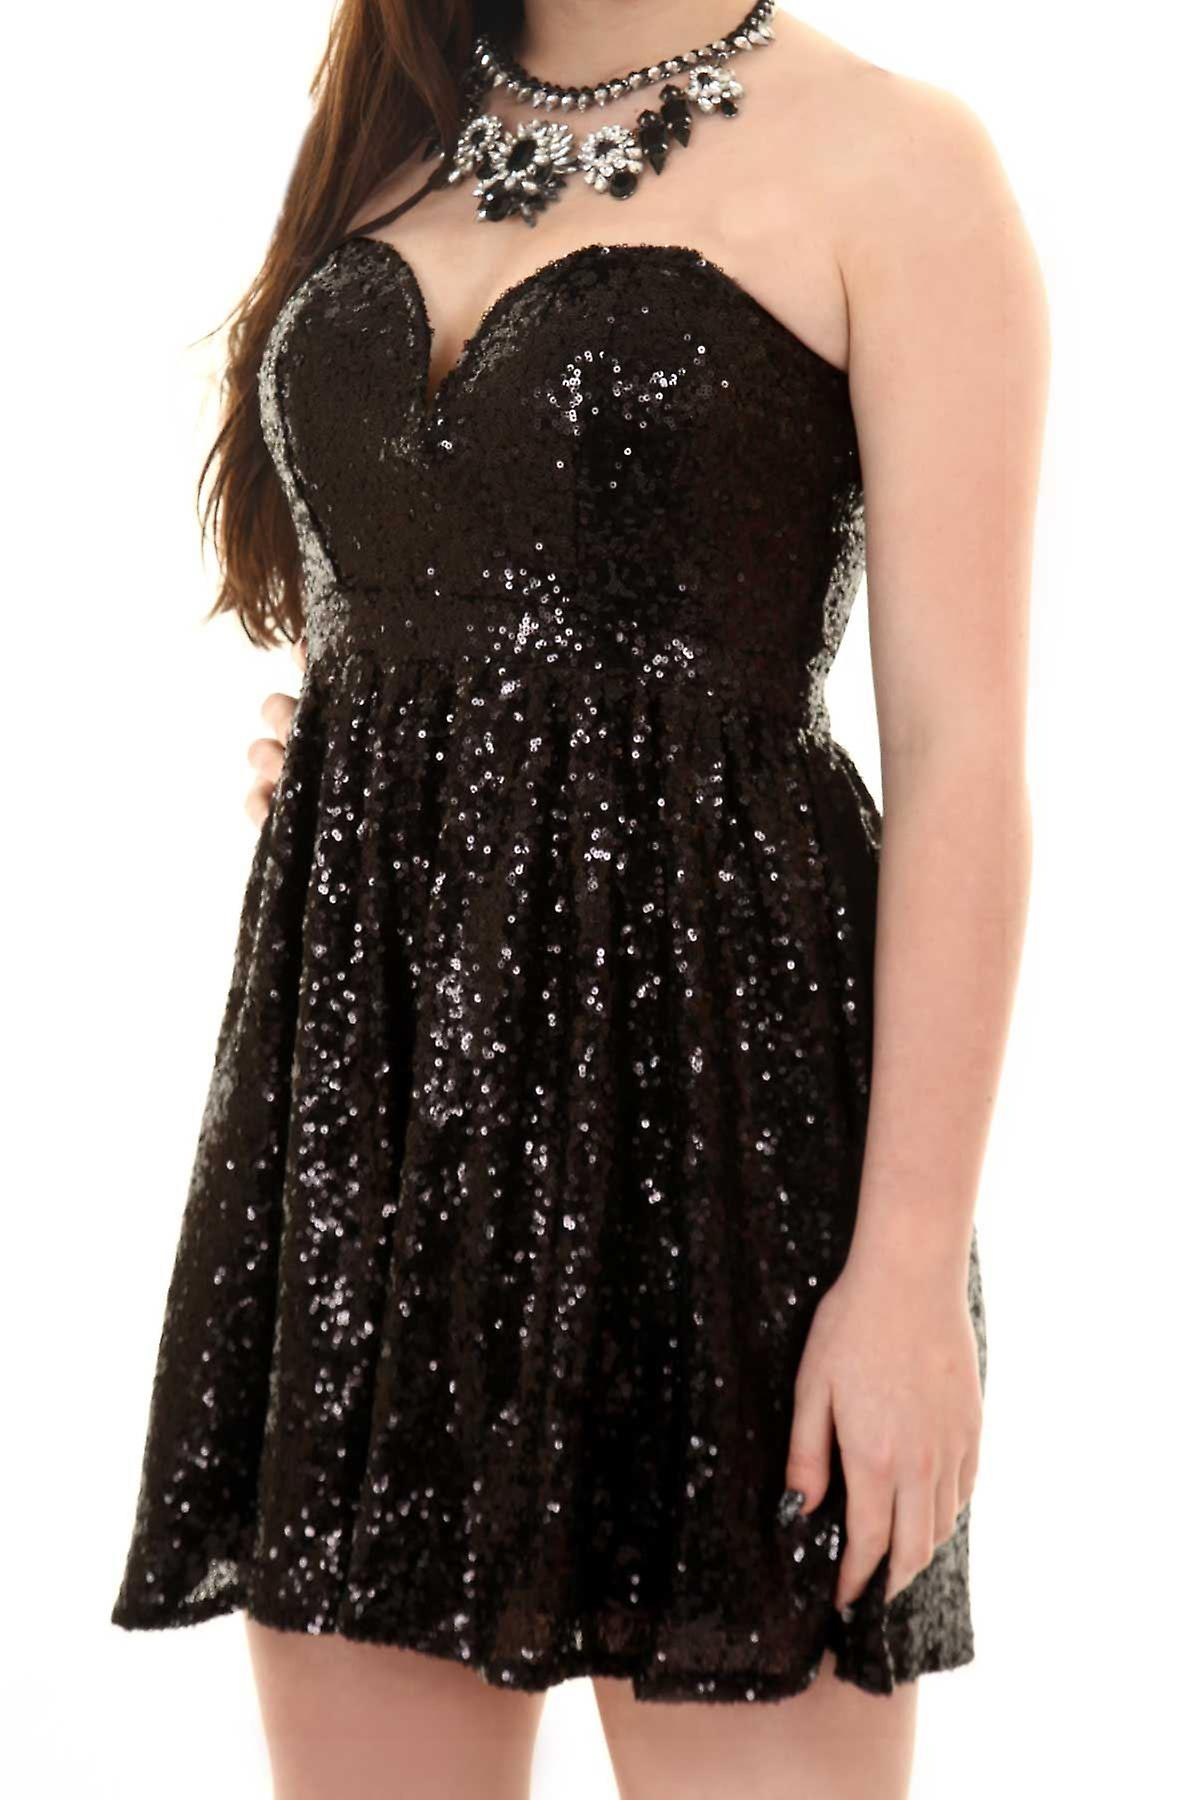 Ladies Sweetheart Neck Bustier Women's Sequin Skater Short Party Cocktail Dress